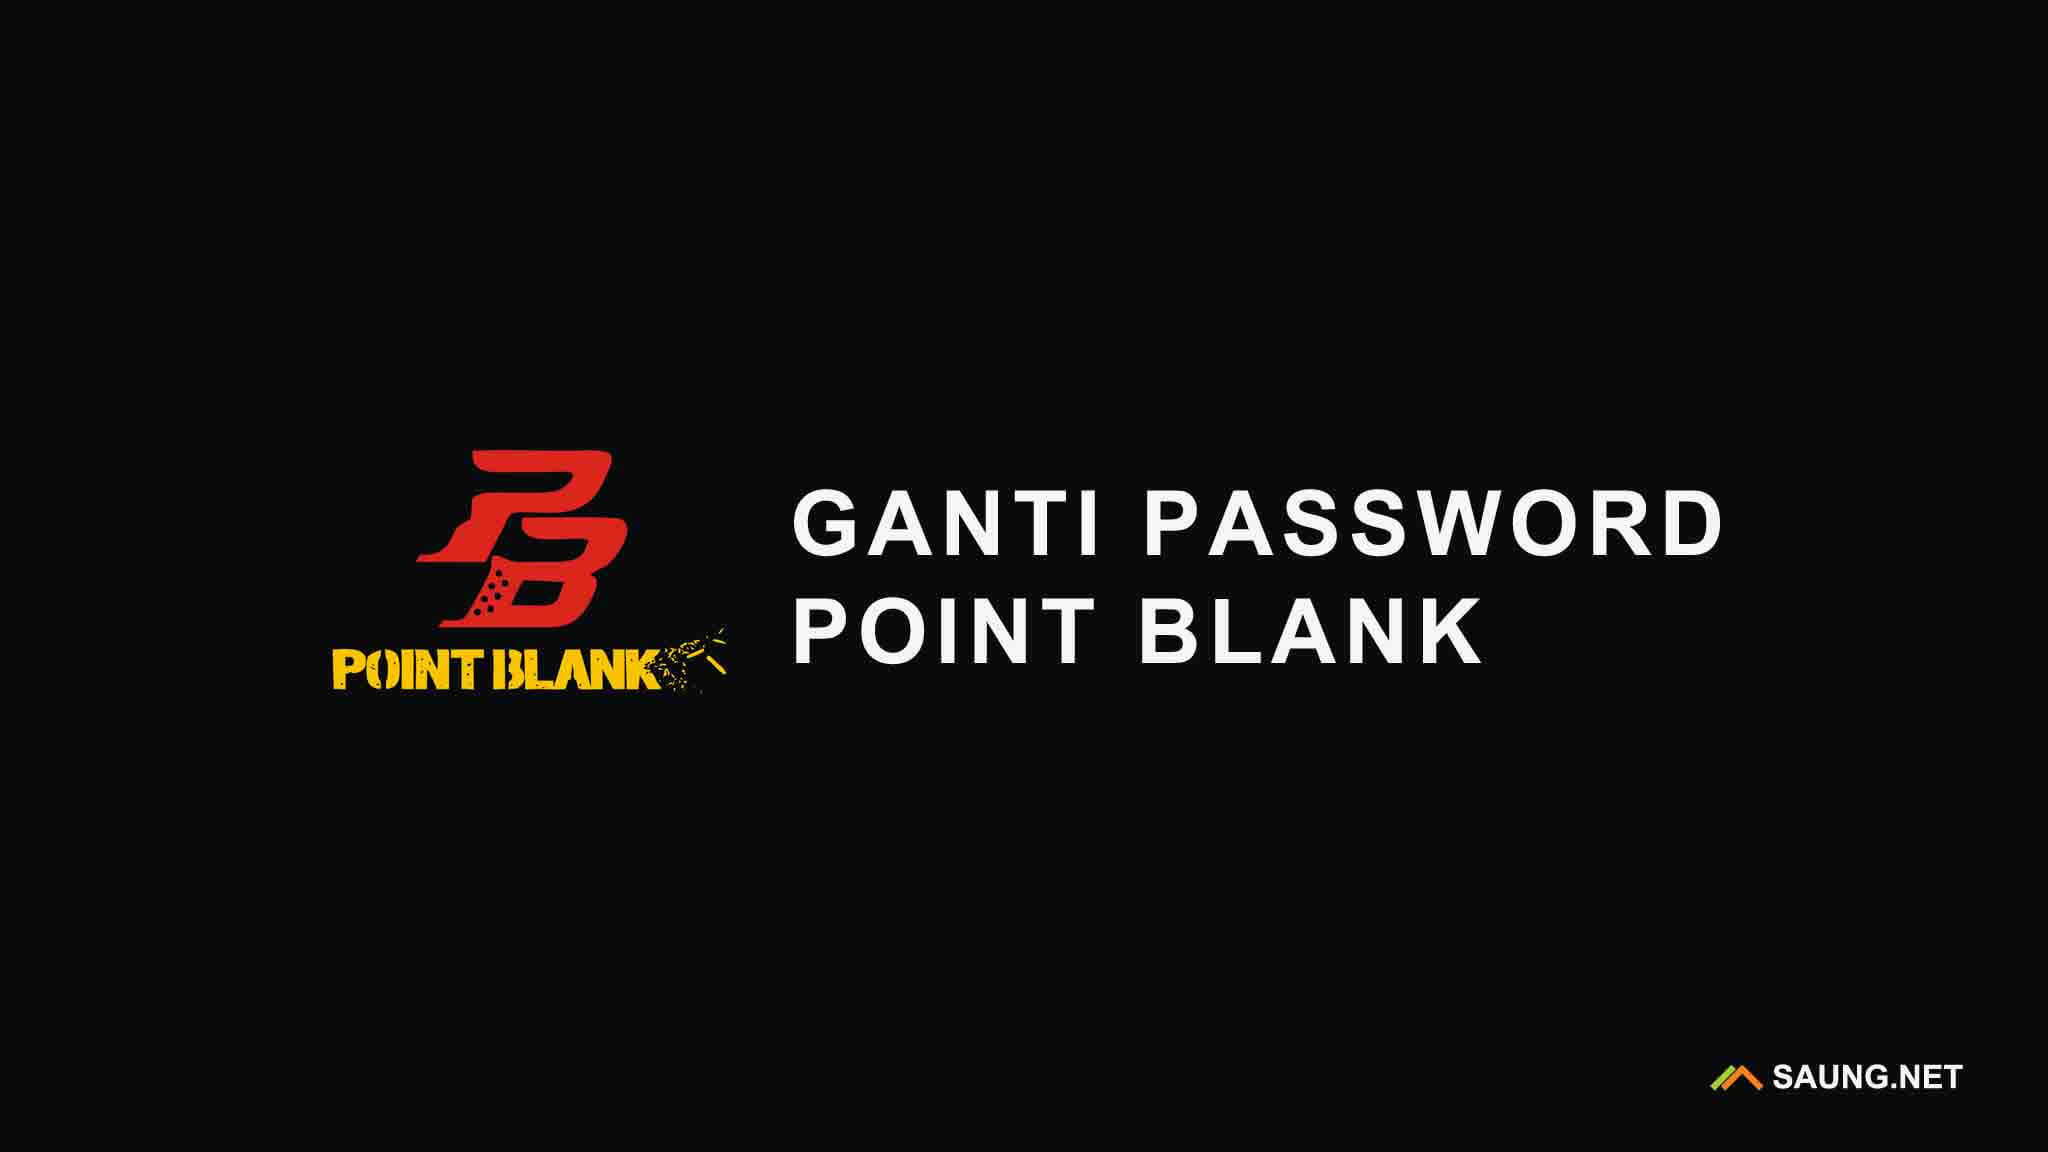 Ganti Password Point Blank Pb Garena Zepetto Mudah Gambar